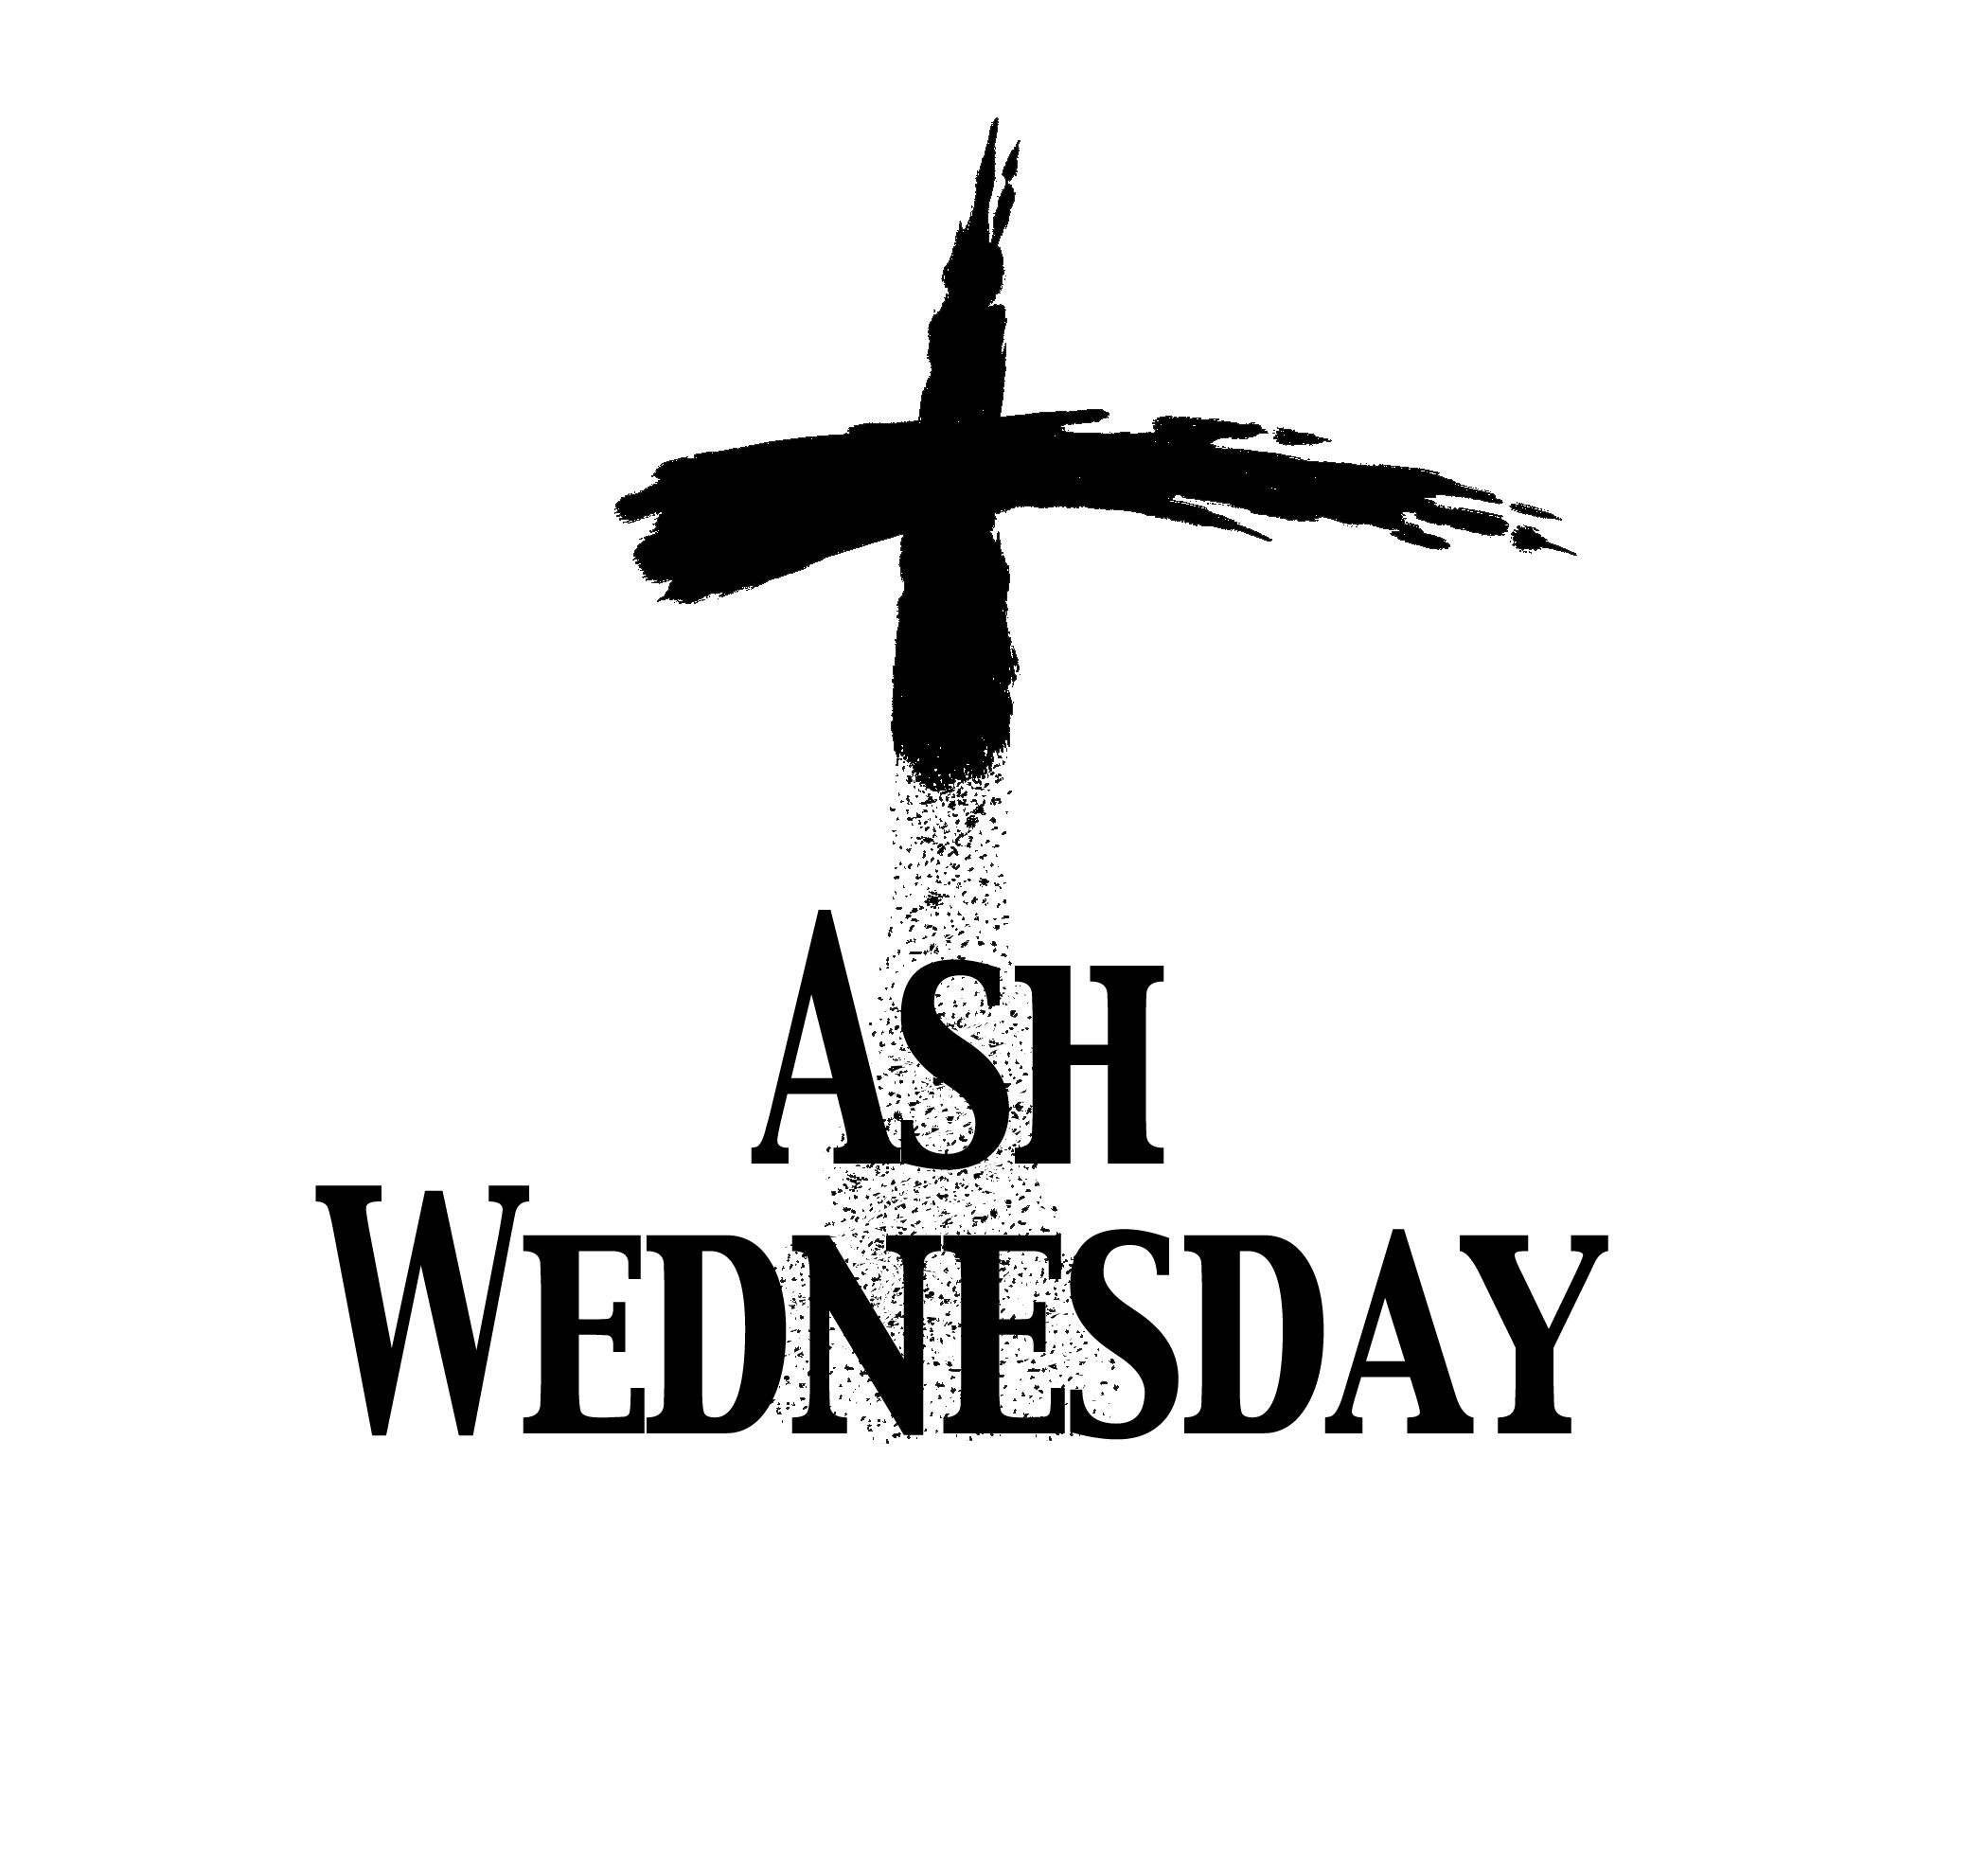 March 5, 2014 – Ash Wednesday the beginning of Lent. : Julie Randle